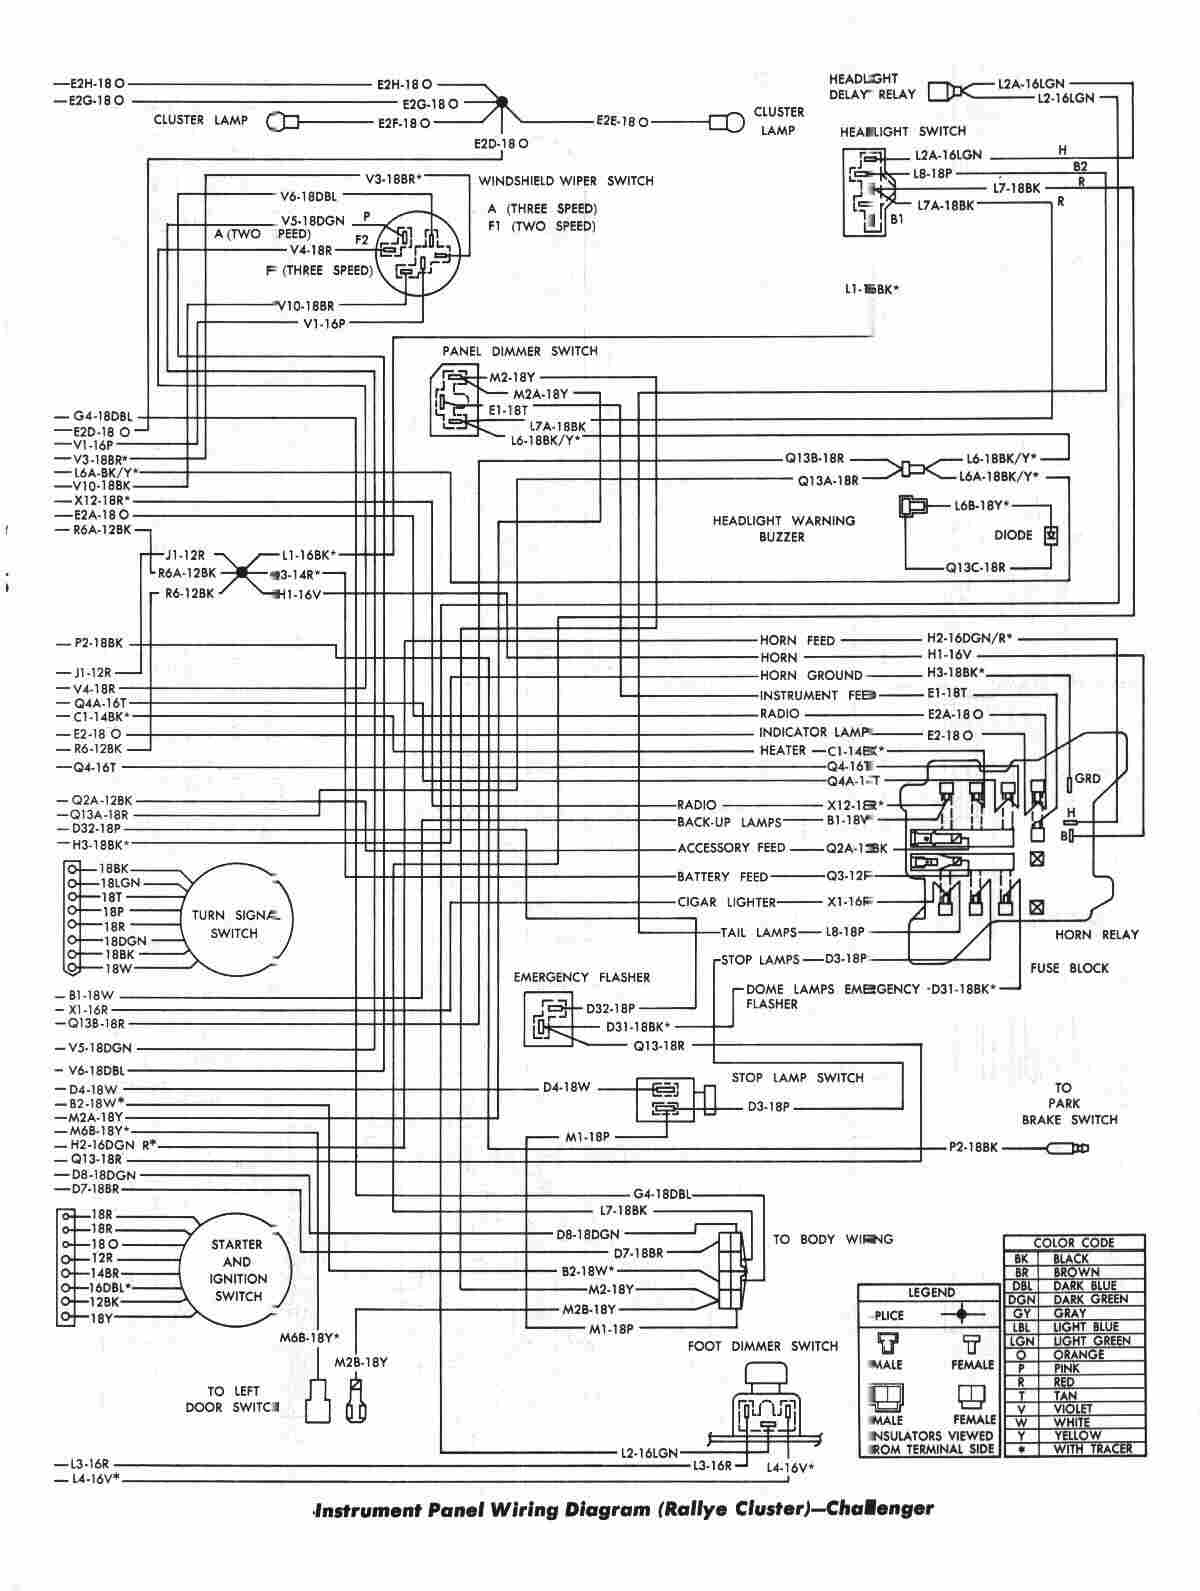 1970 Dodge D100 Wiring Diagram Wiring Diagrams Register Register Miglioribanche It